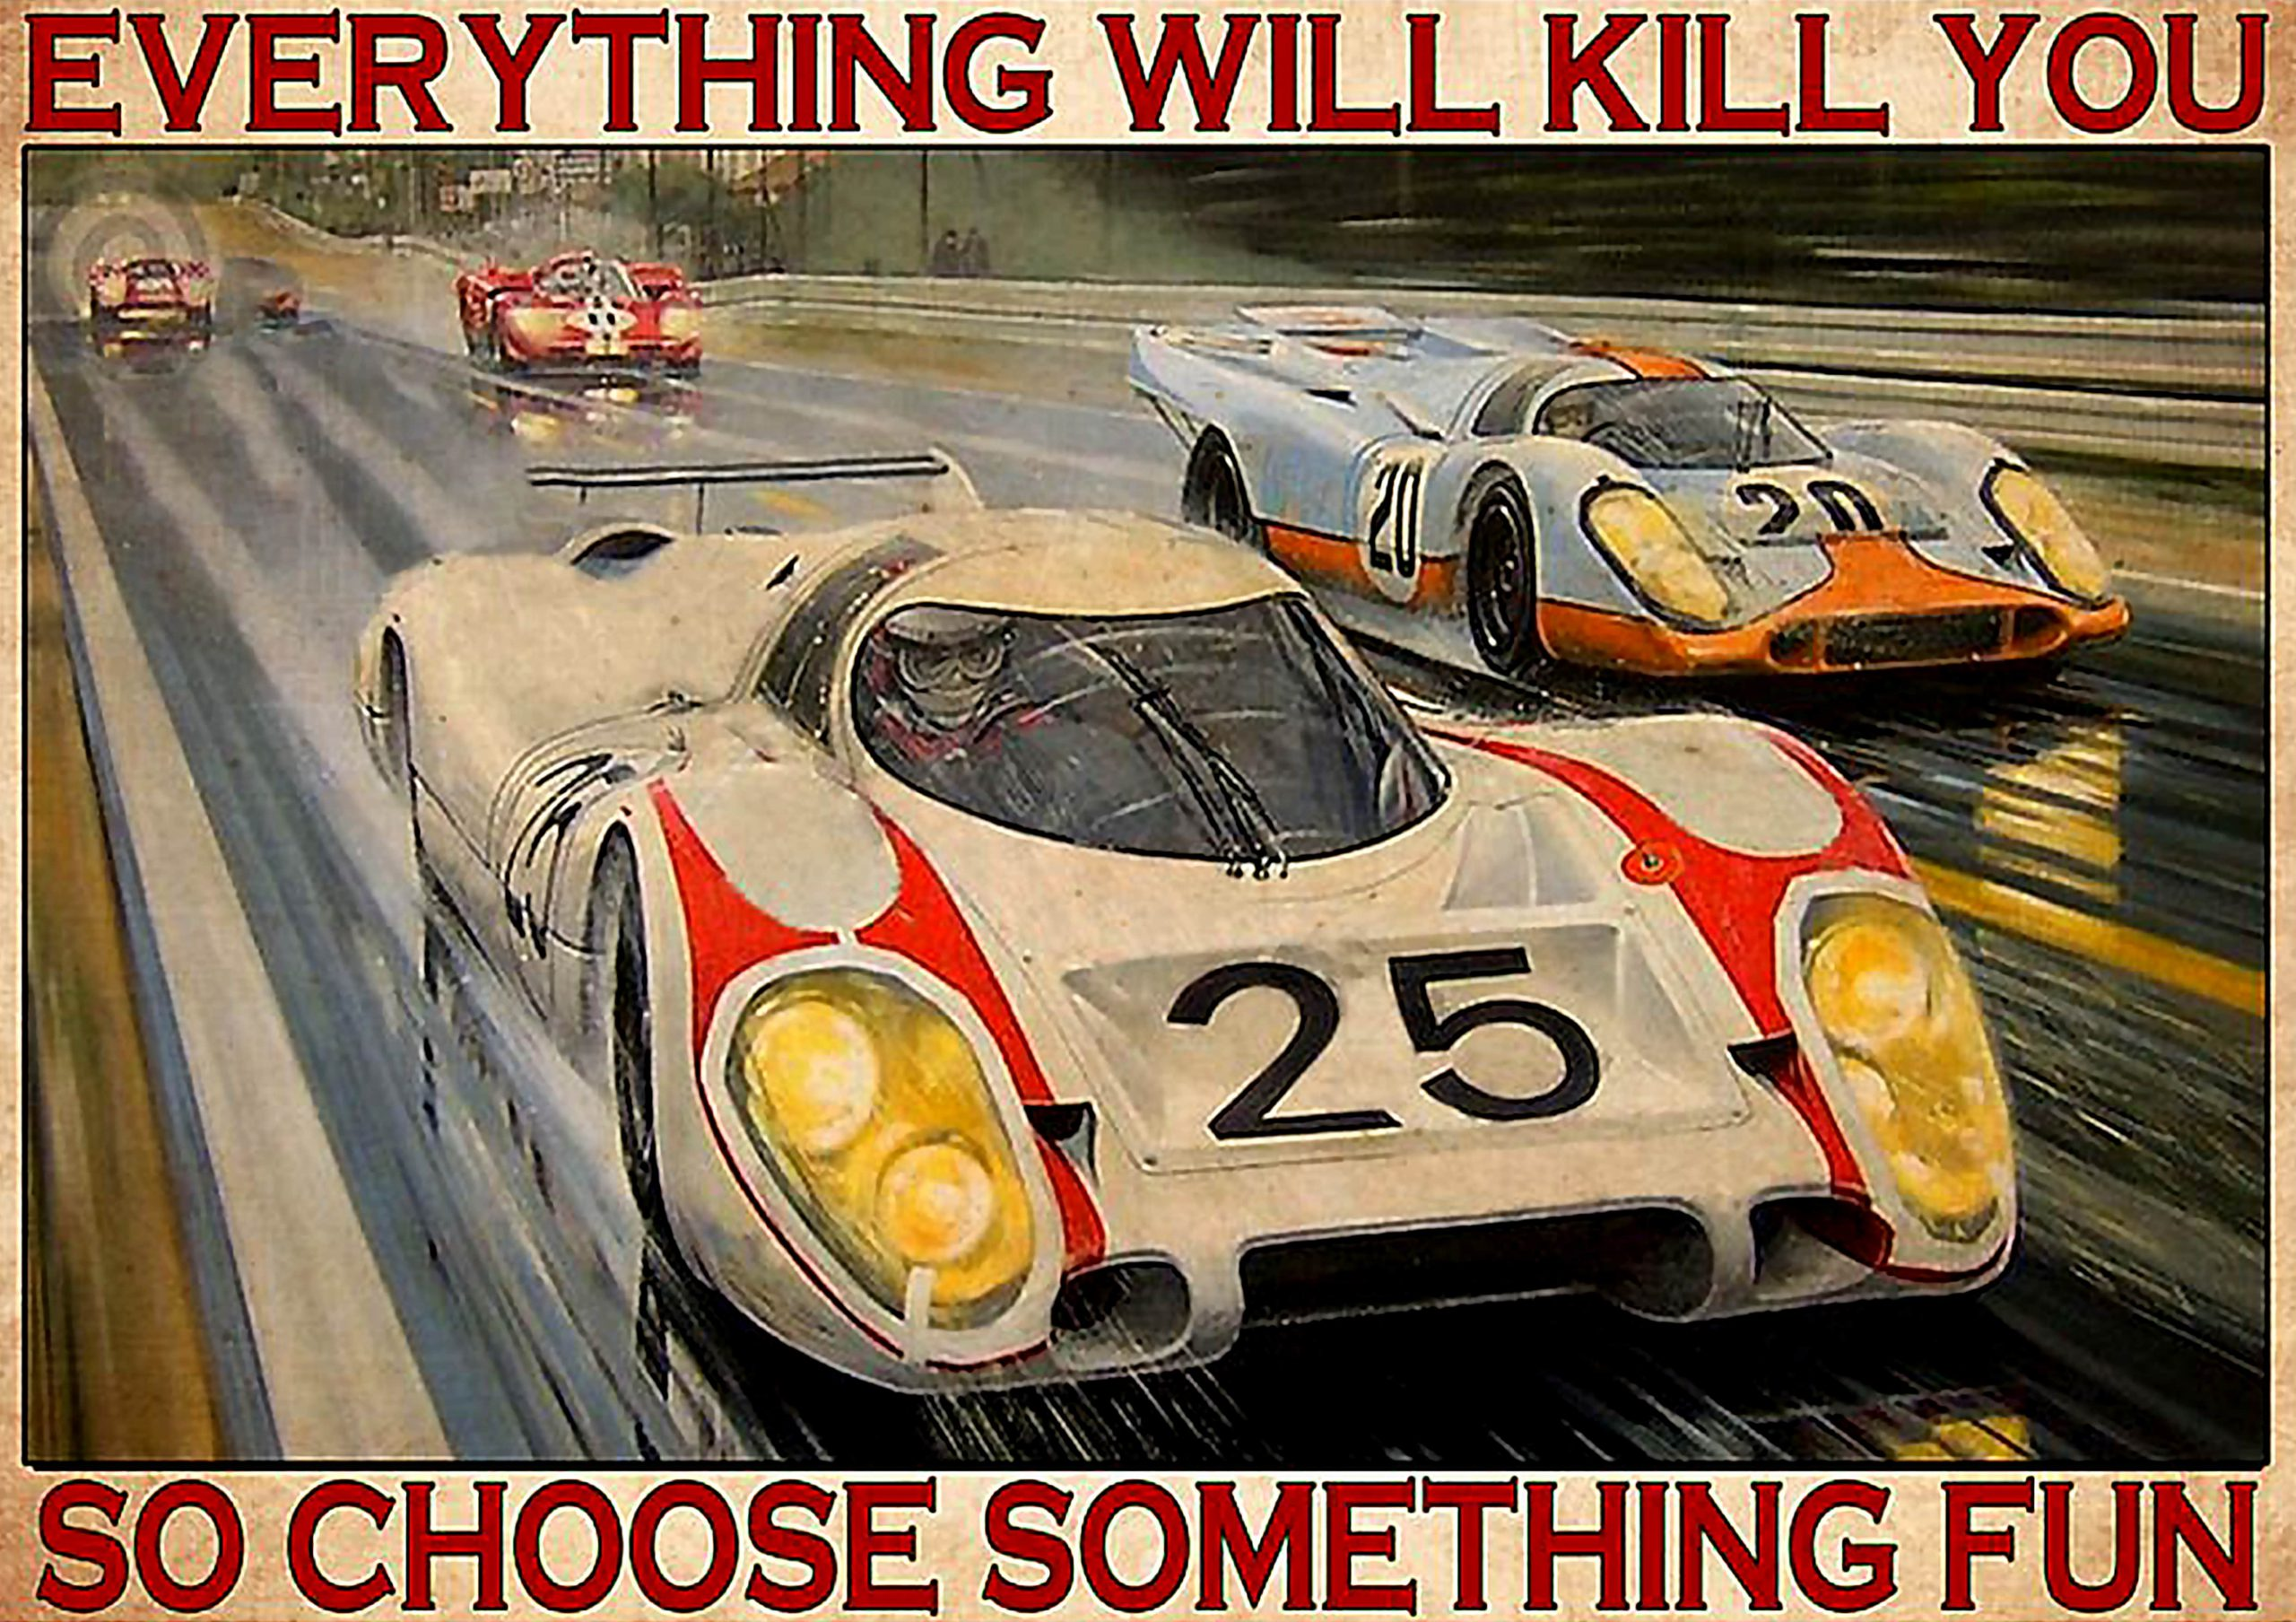 vintage pors 917lh lemans everything will kill you so choose something fun poster 1 - Copy (3)